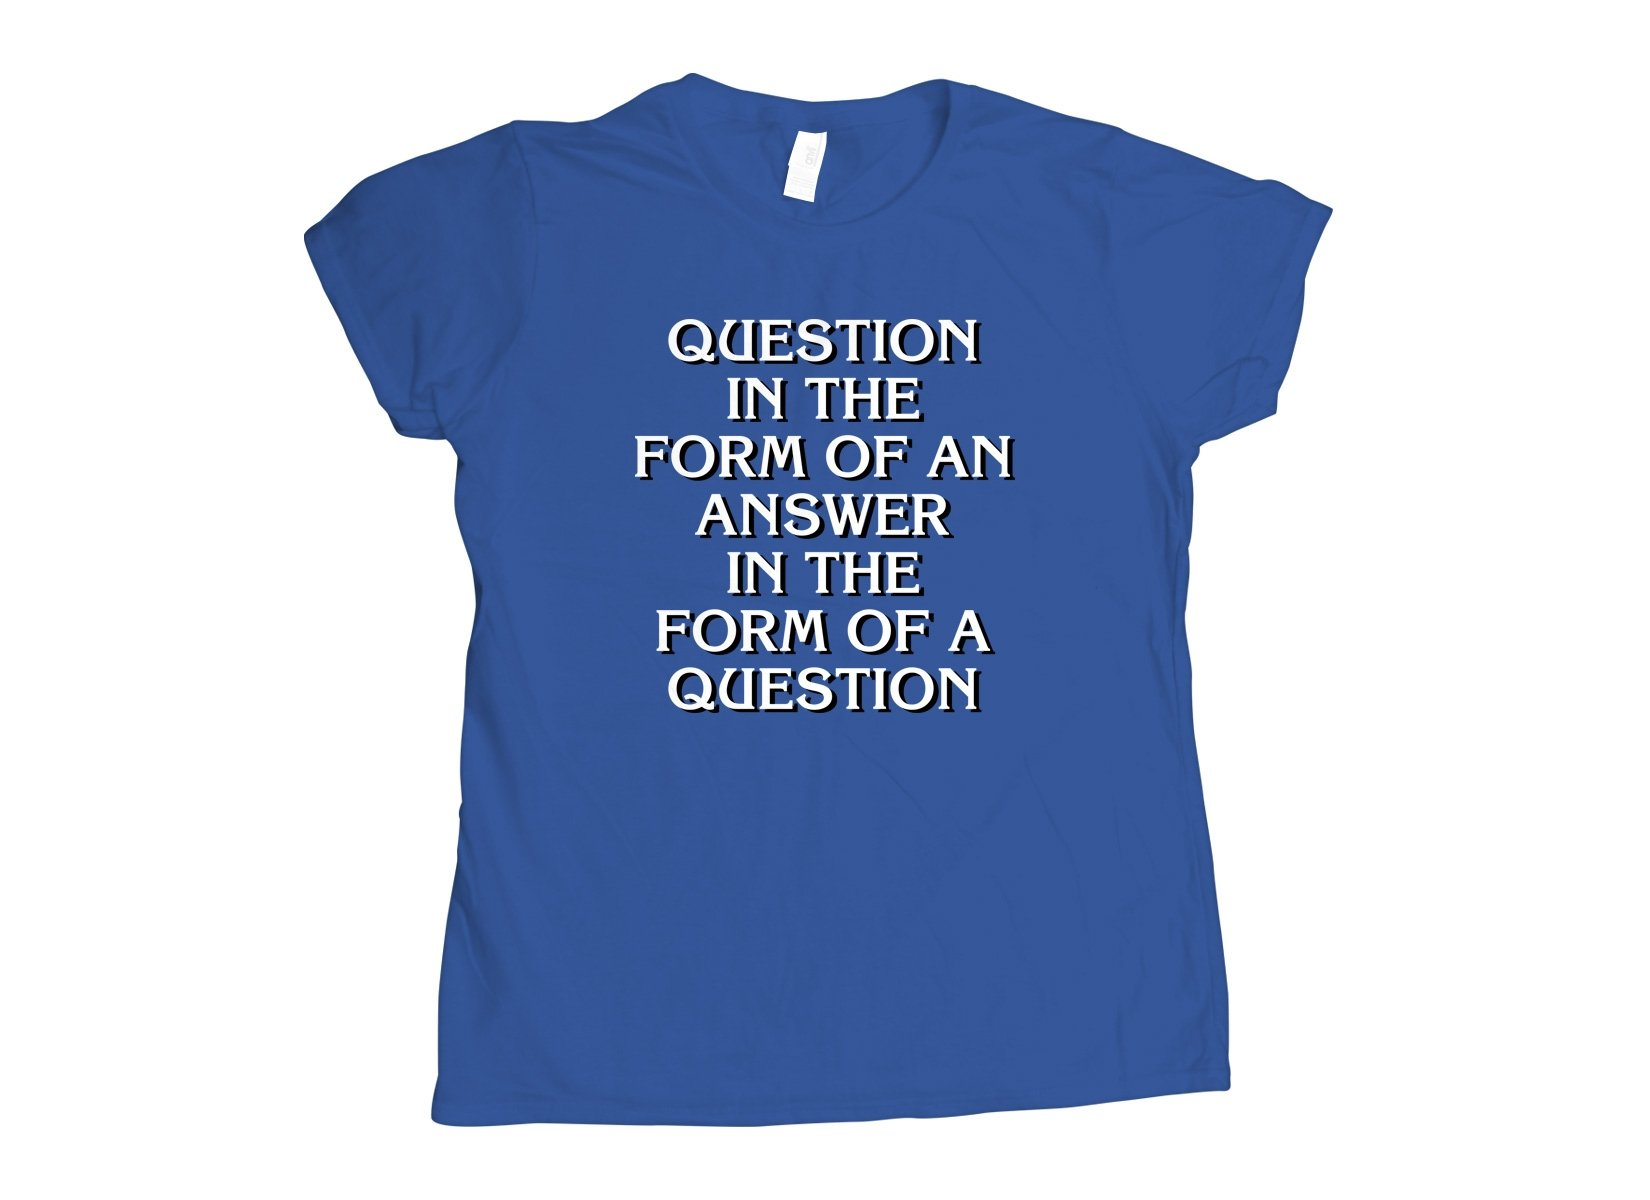 Question In The Form Of An Answer on Womens T-Shirt